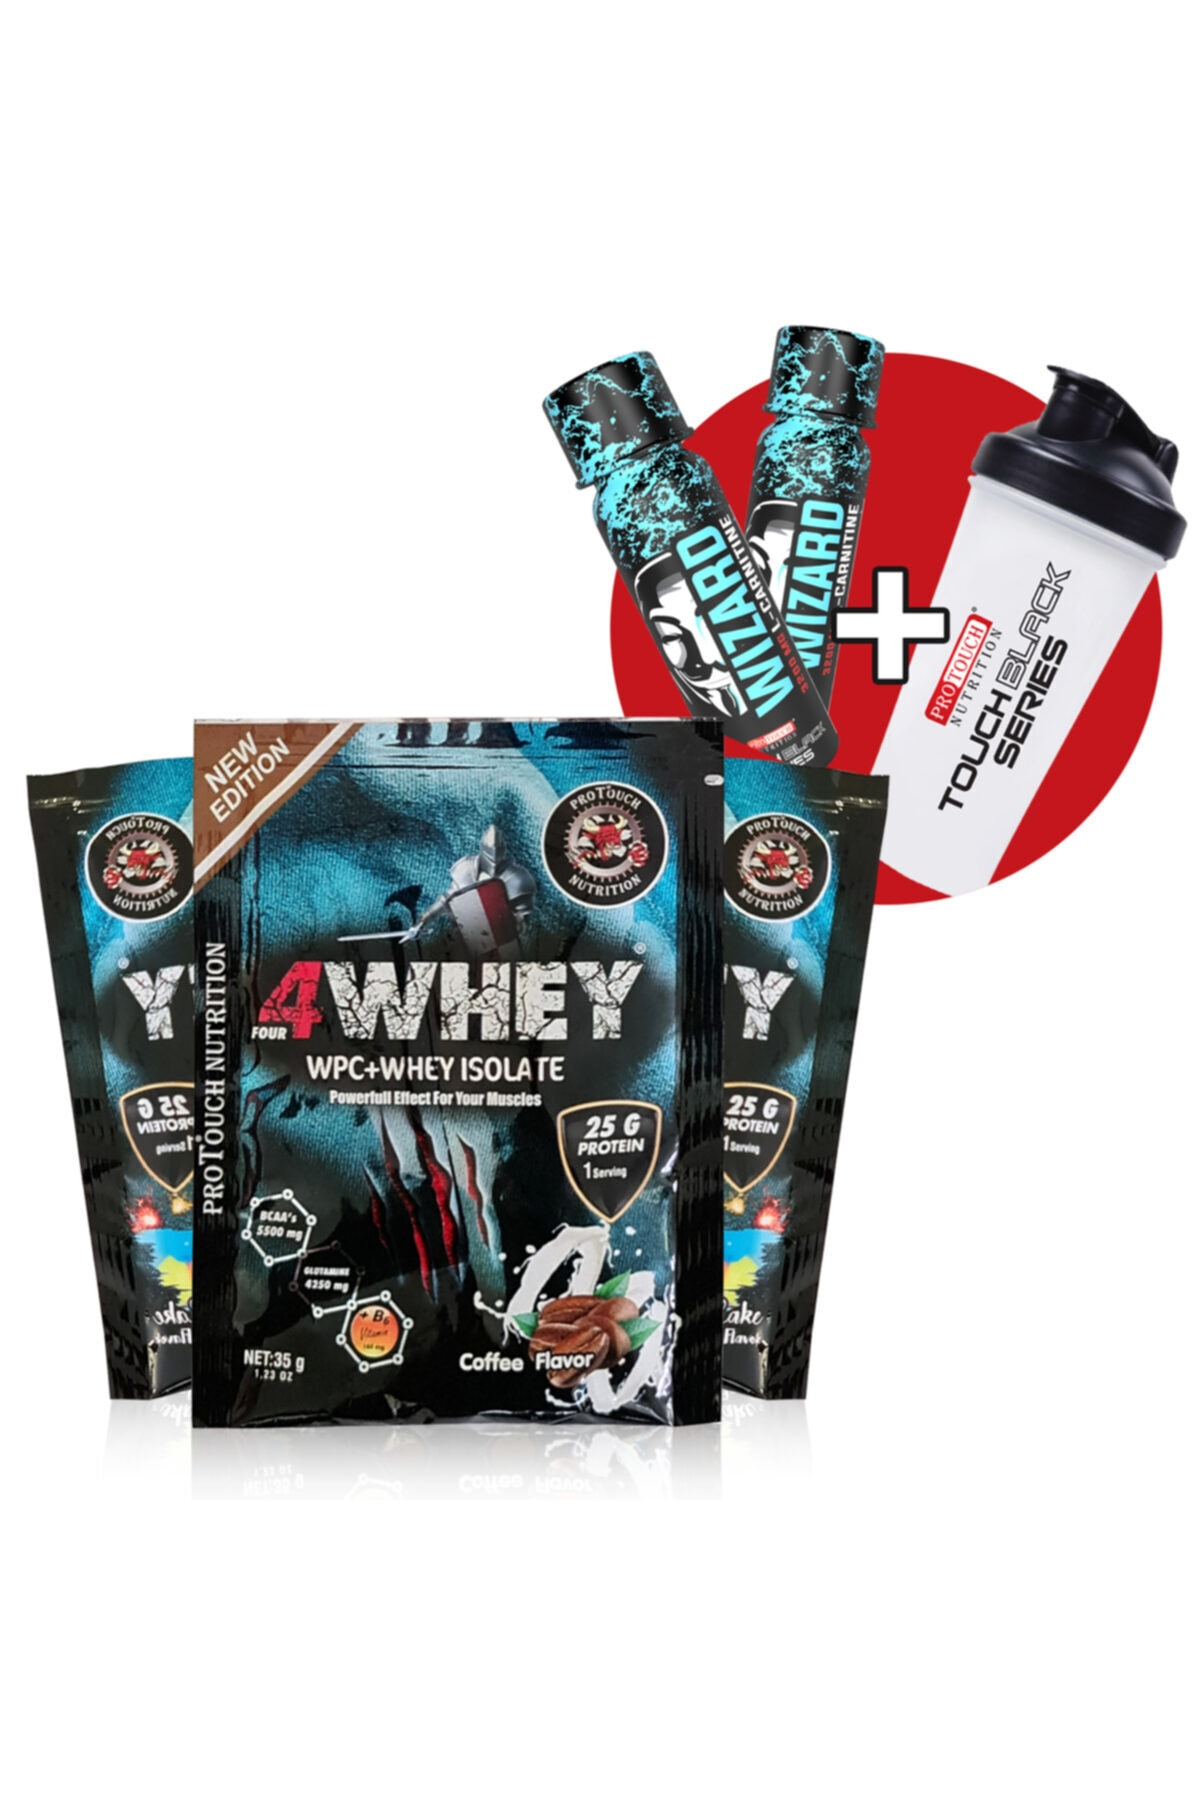 Protouch Nutrition Protouch 4whey Isolate 32 Gr 50 Şase - 25 Coffee + 25 Birthday Cake Aromalı 1